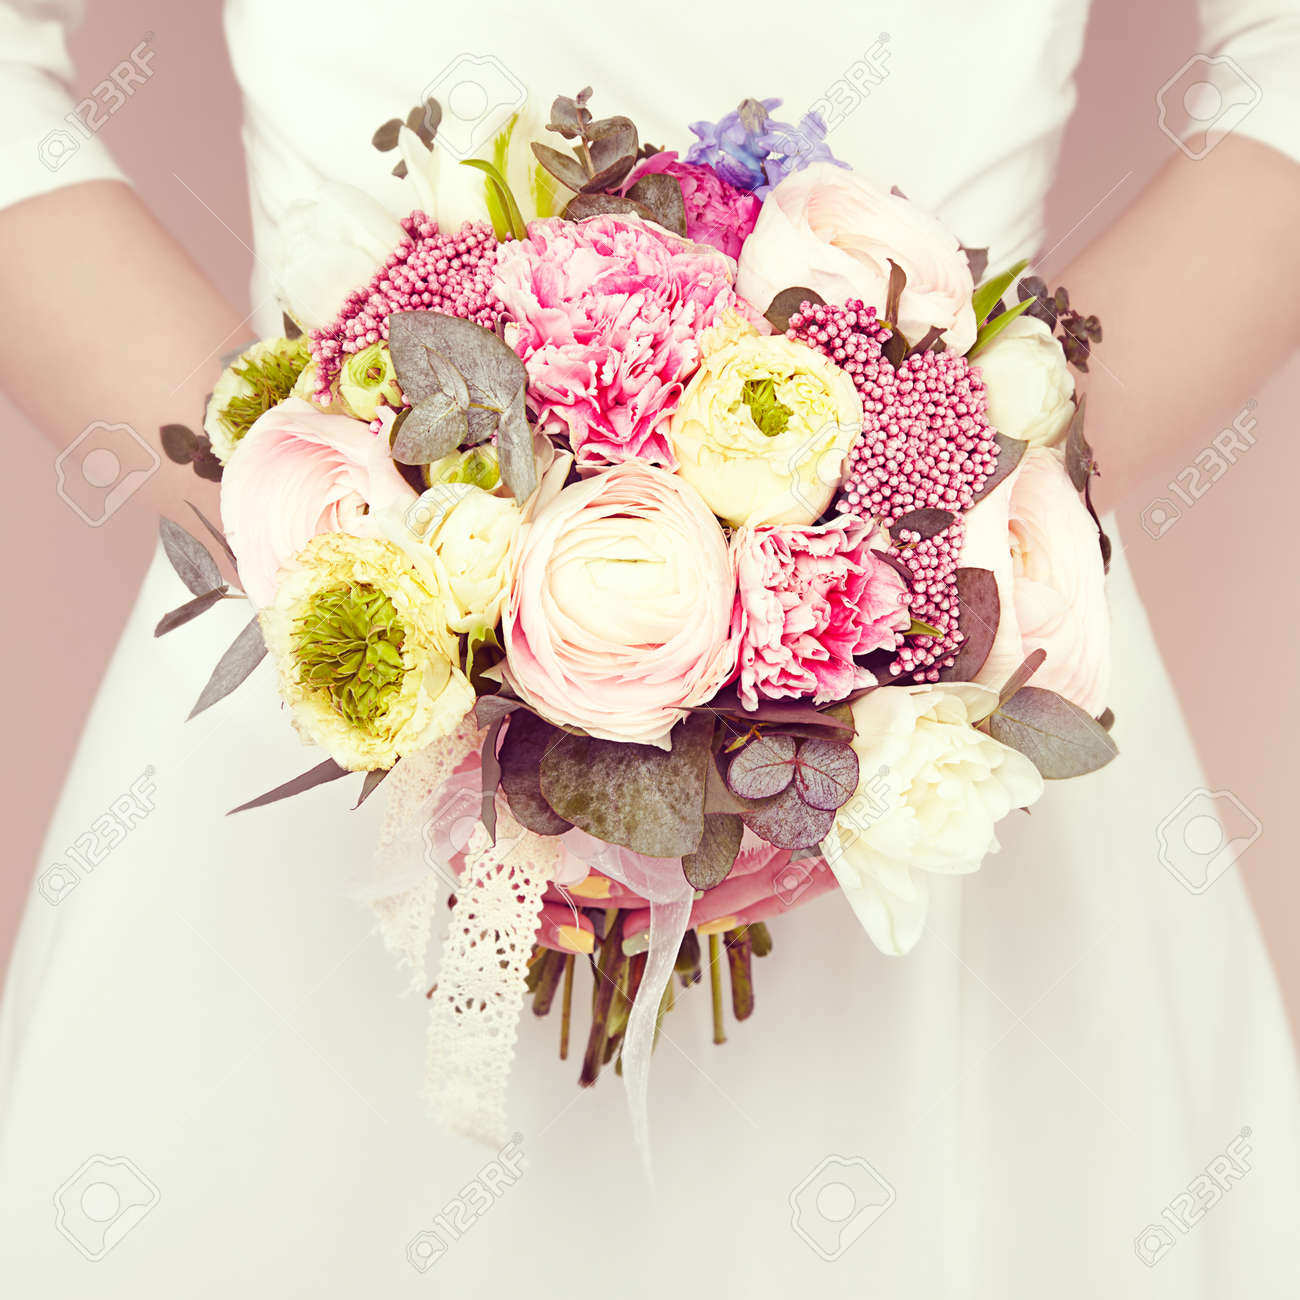 Woman With Bouquet Of Flowers In Her Hands Flowers Spring Stock